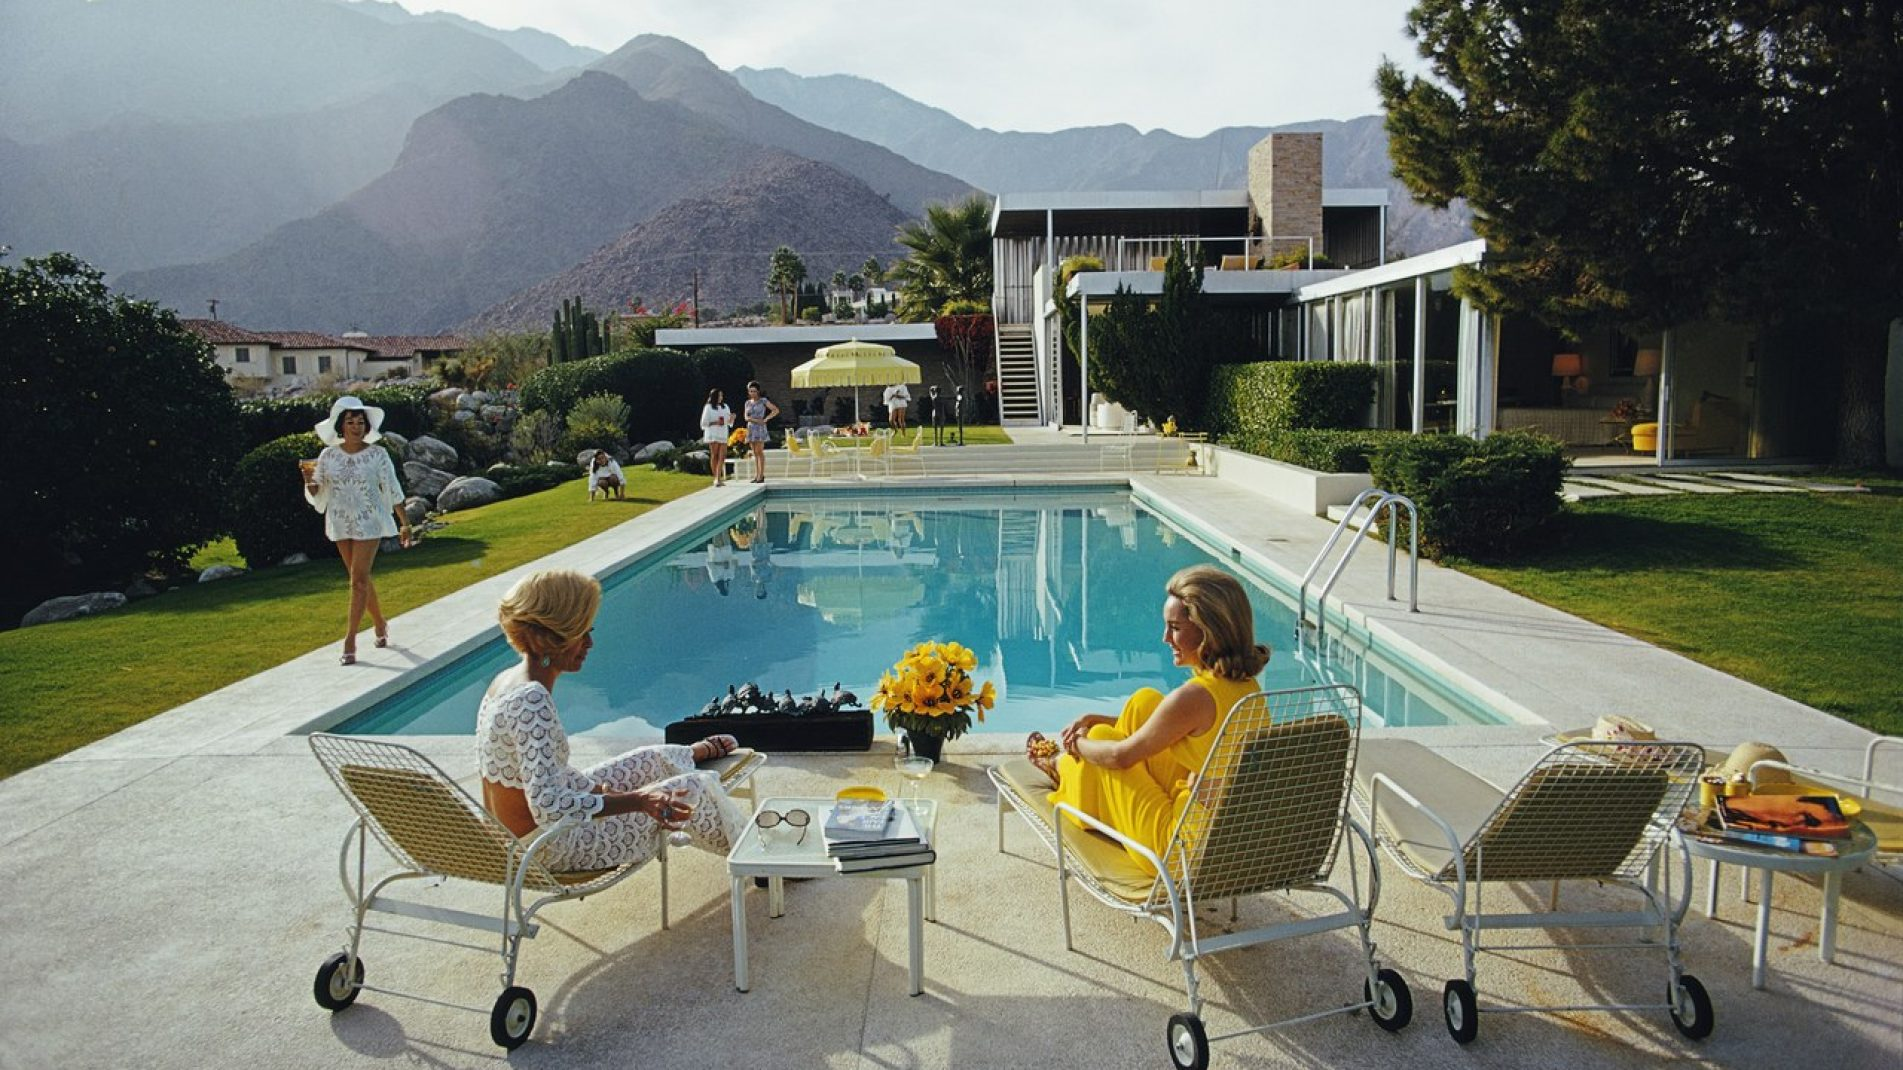 Slim Aarons / Getty